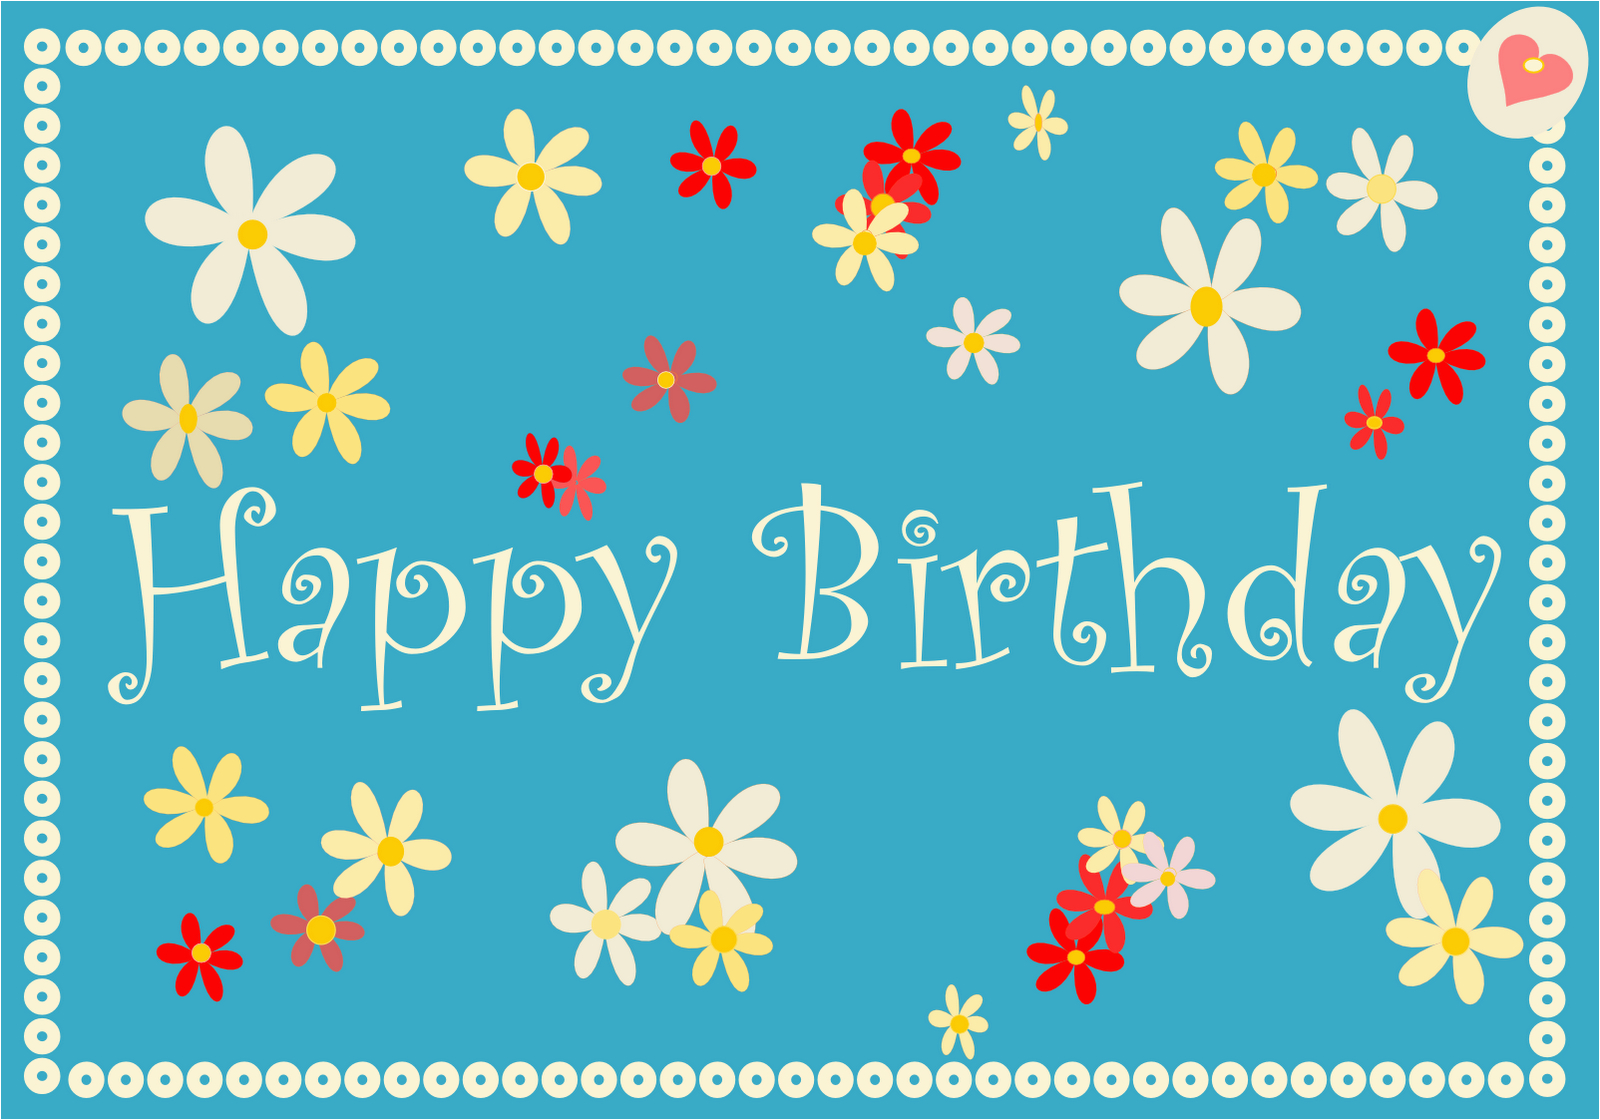 Make Birthday Card Online Printable Free Free Birthday Cards Birthday